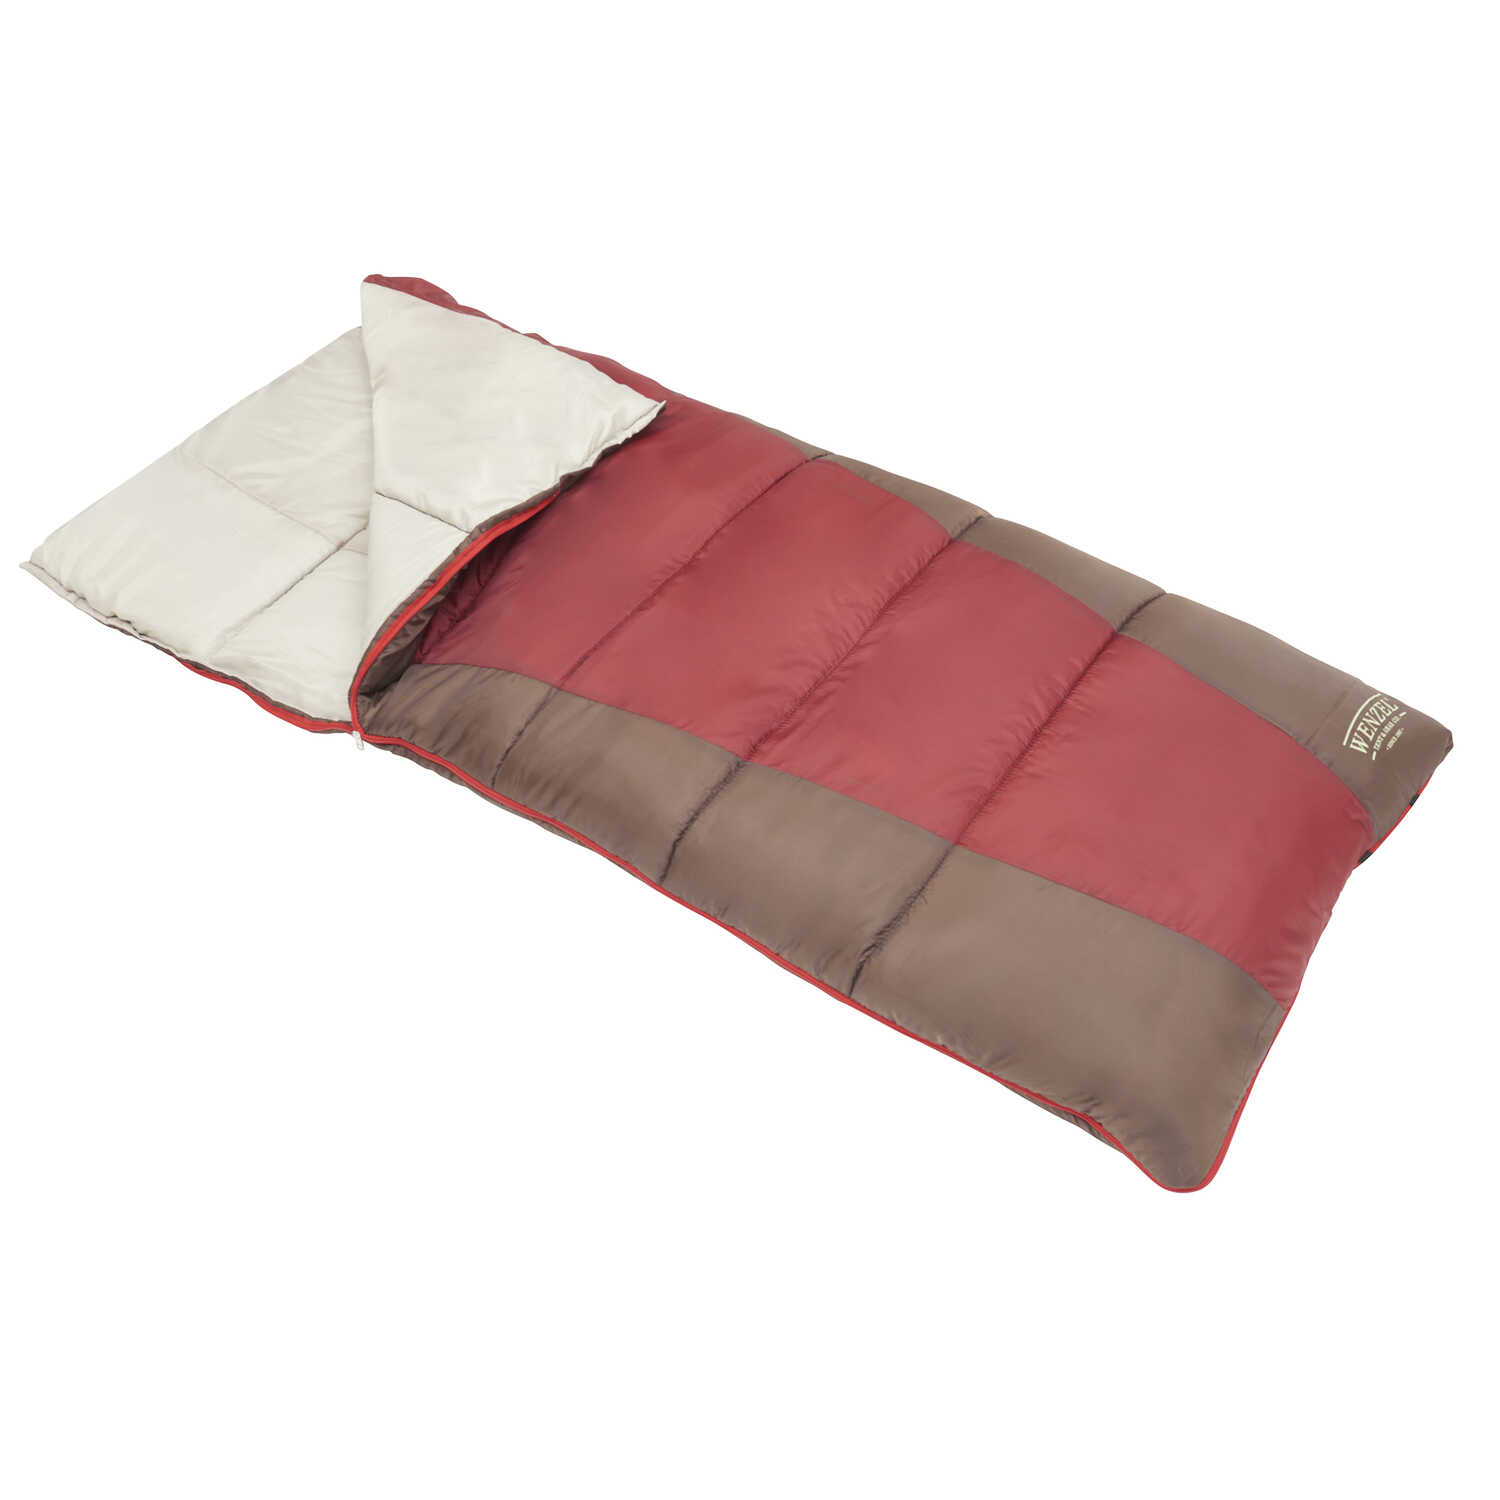 Wenzel  Gray/Red  Sleeping Bag  3 in. H x 33 in. W x 78 in. L 1 pc.